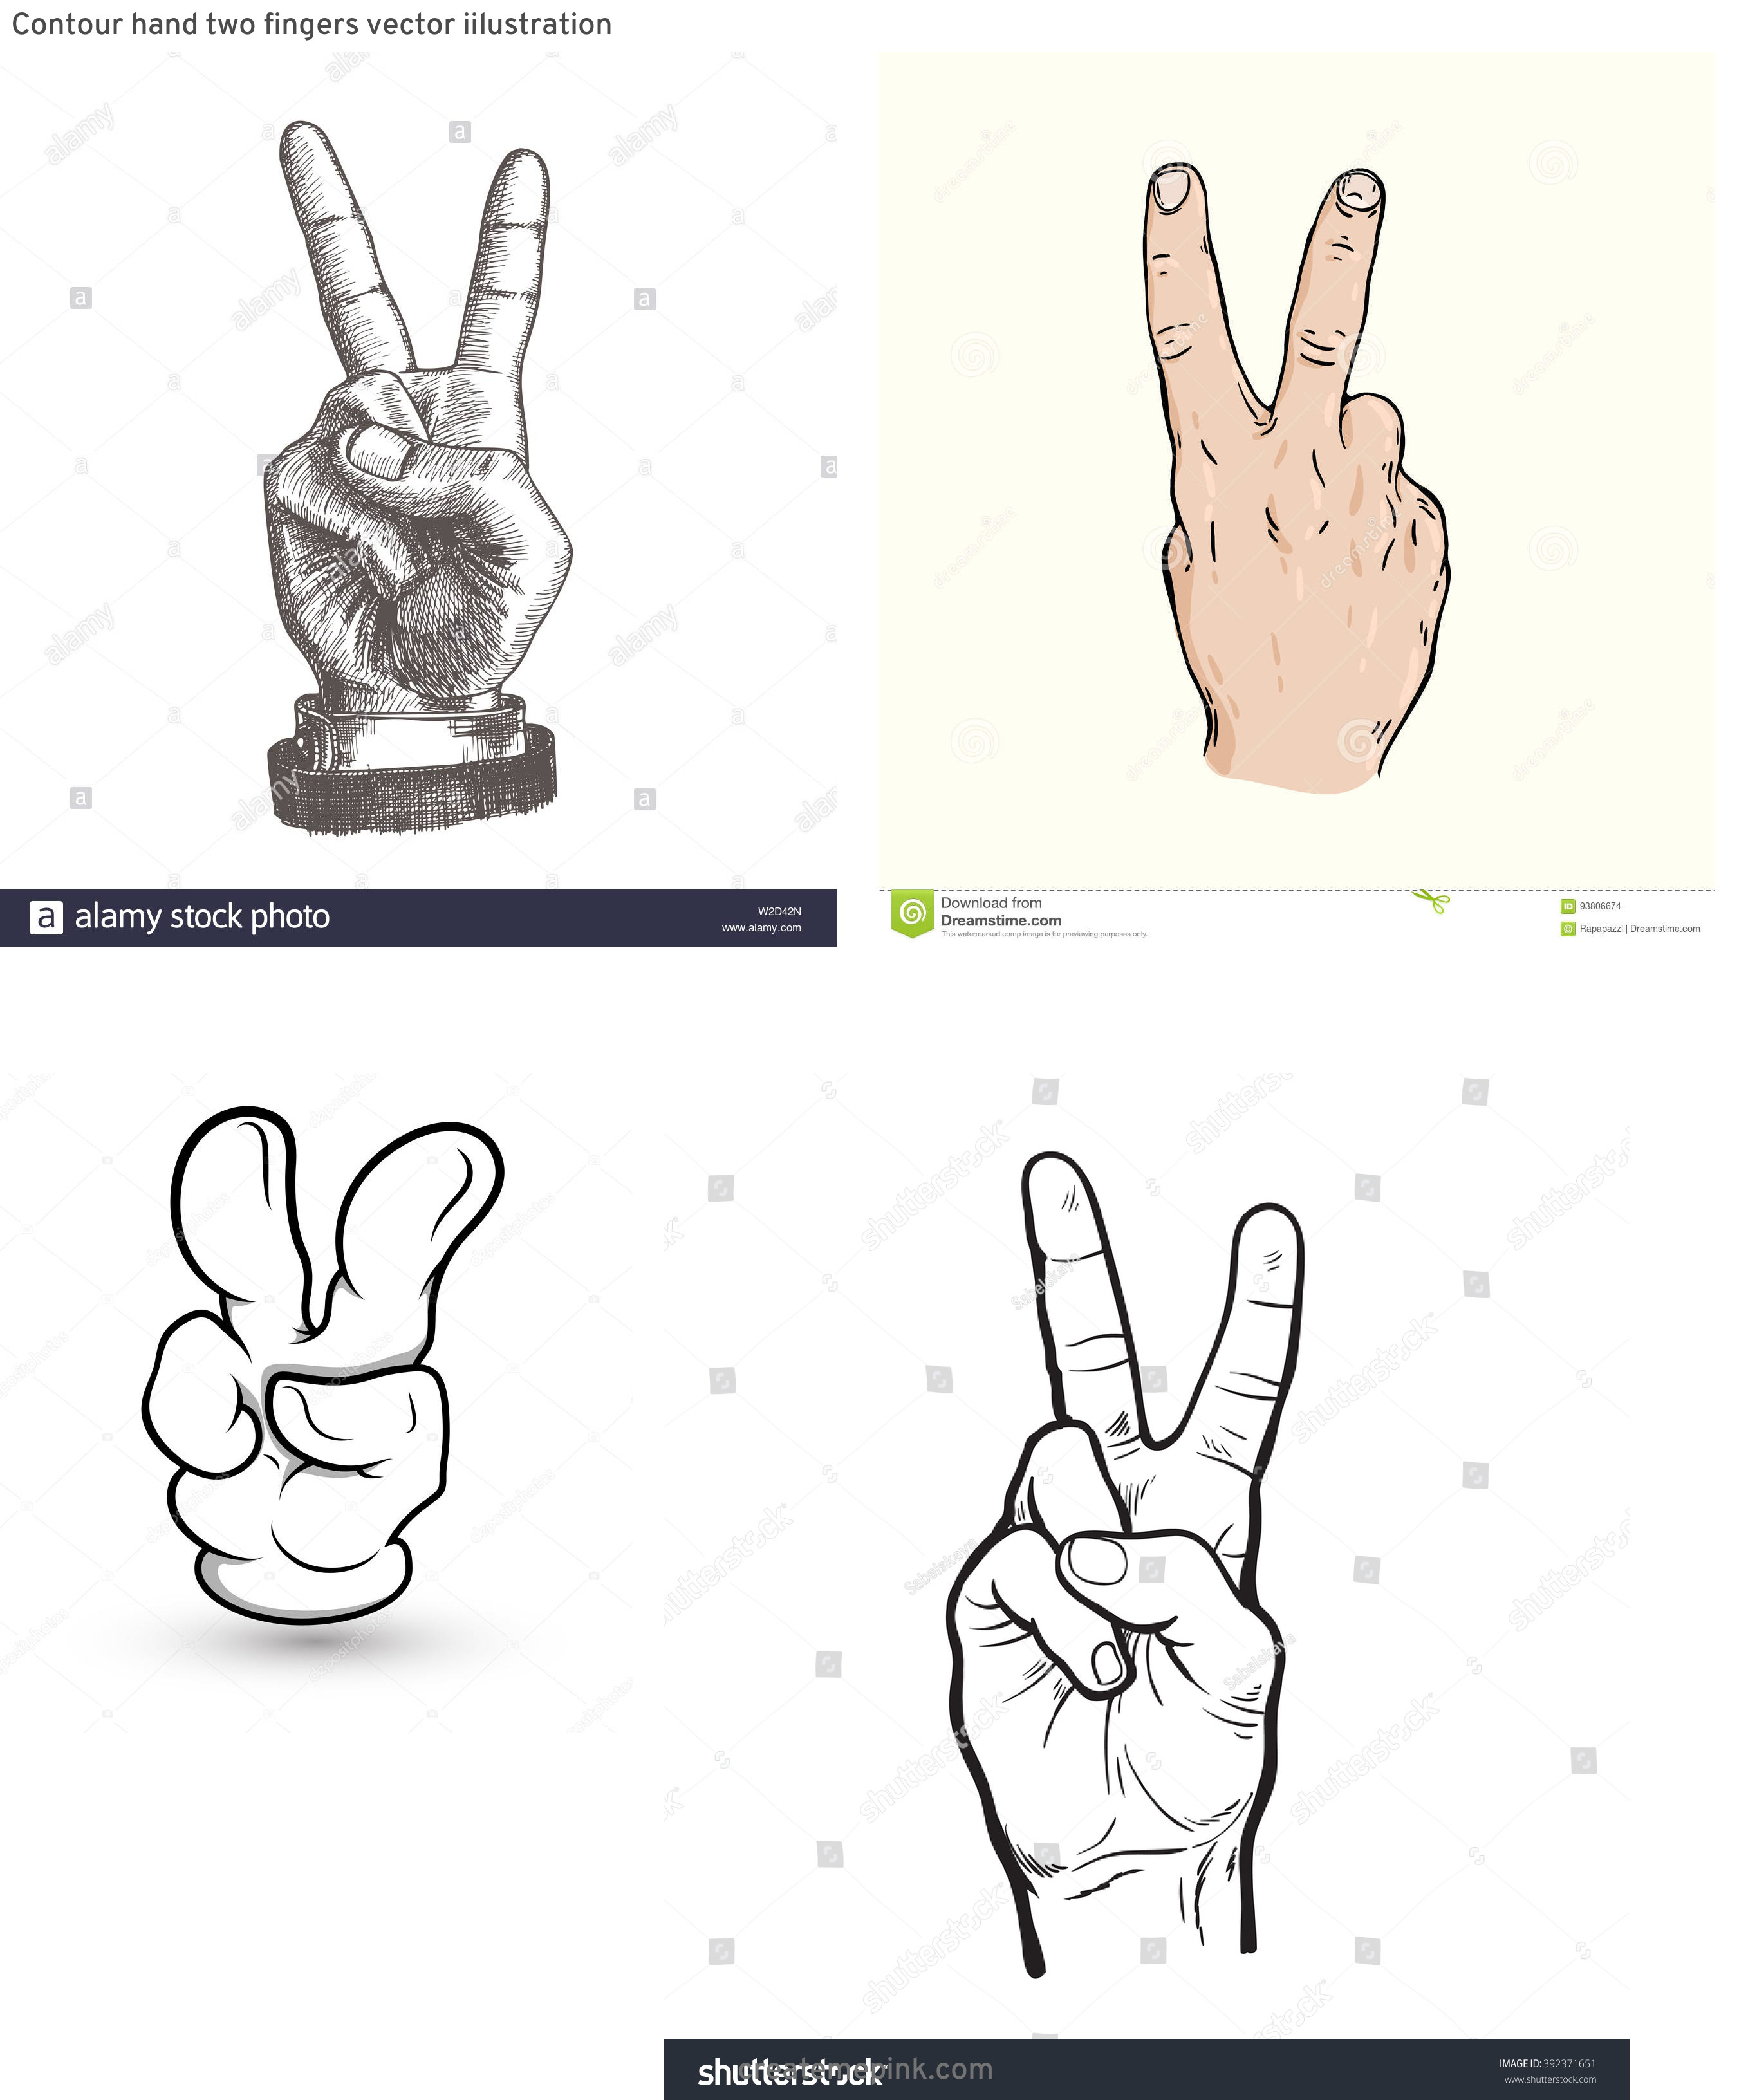 Two Finger Vector: Contour Hand Two Fingers Vector Iilustration